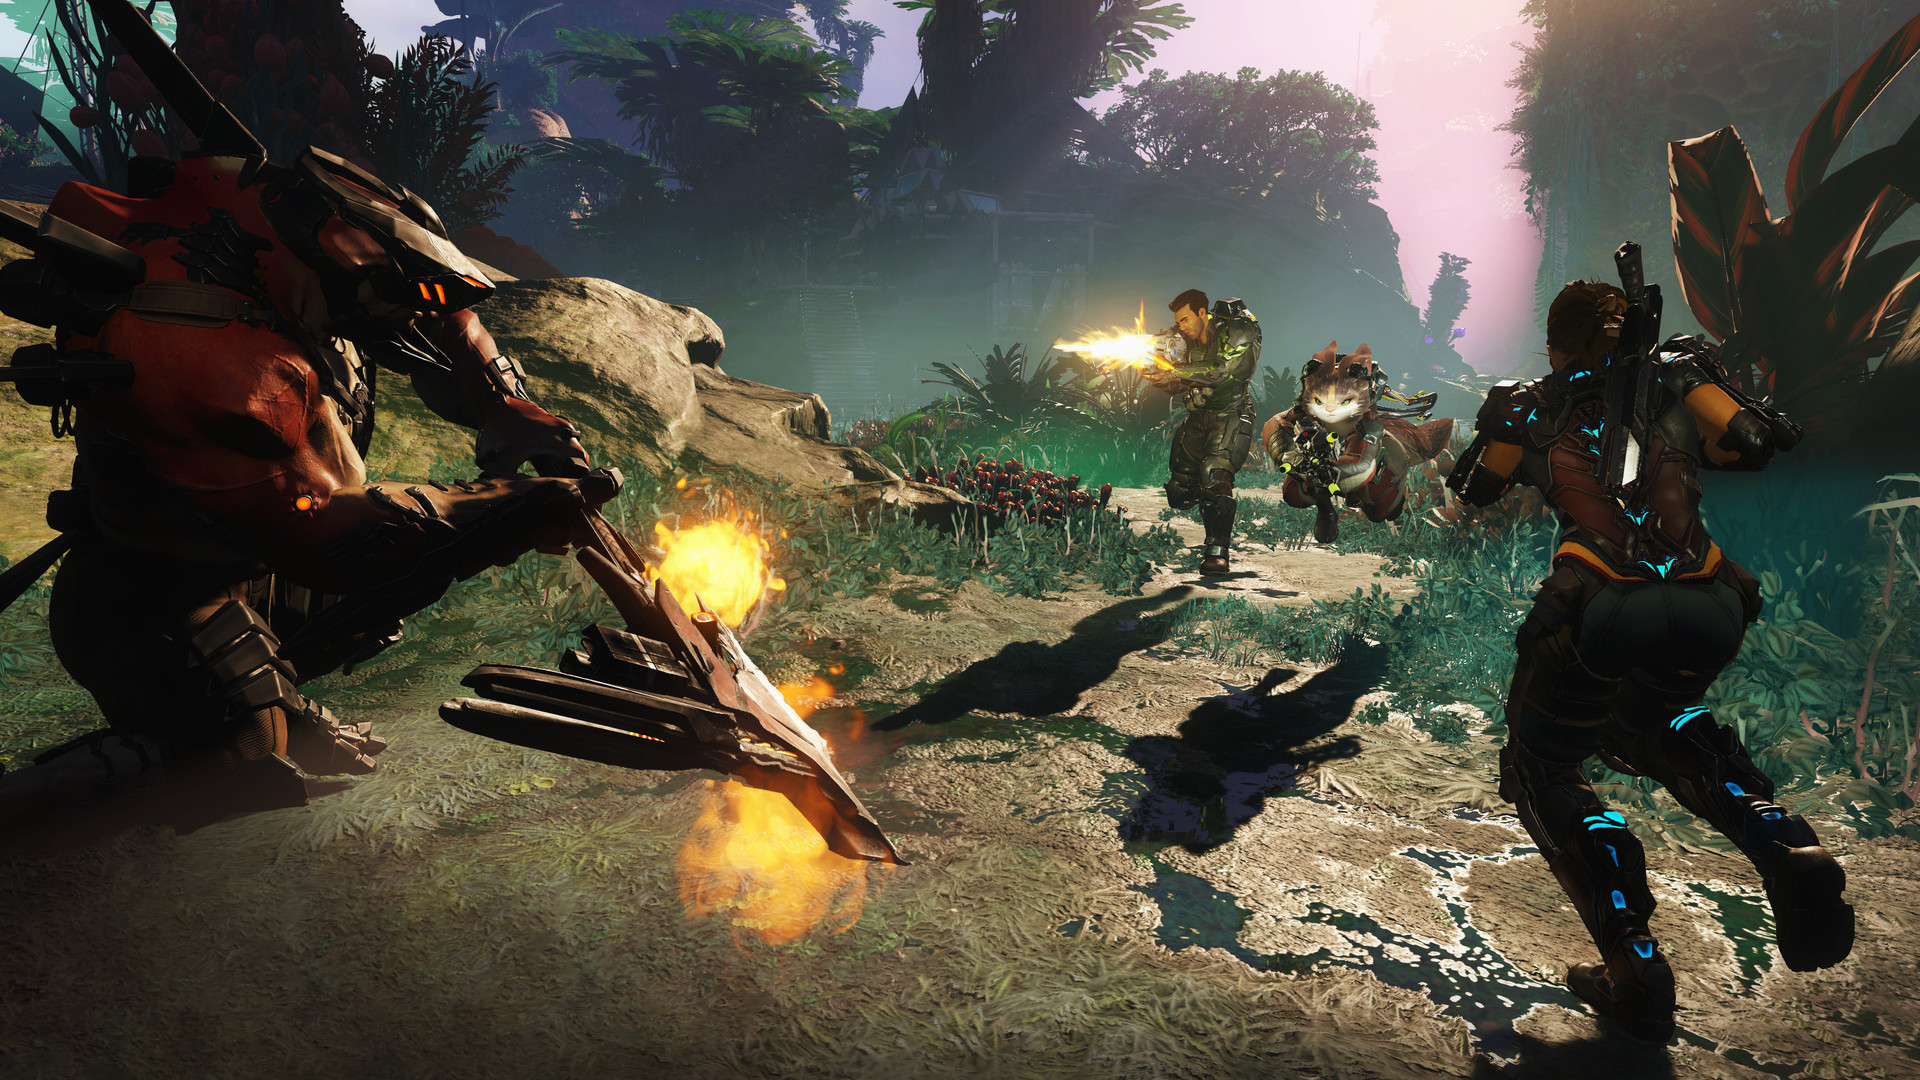 Crucible, Amazon's new shooter, has a ton of charm but needs more work screenshot